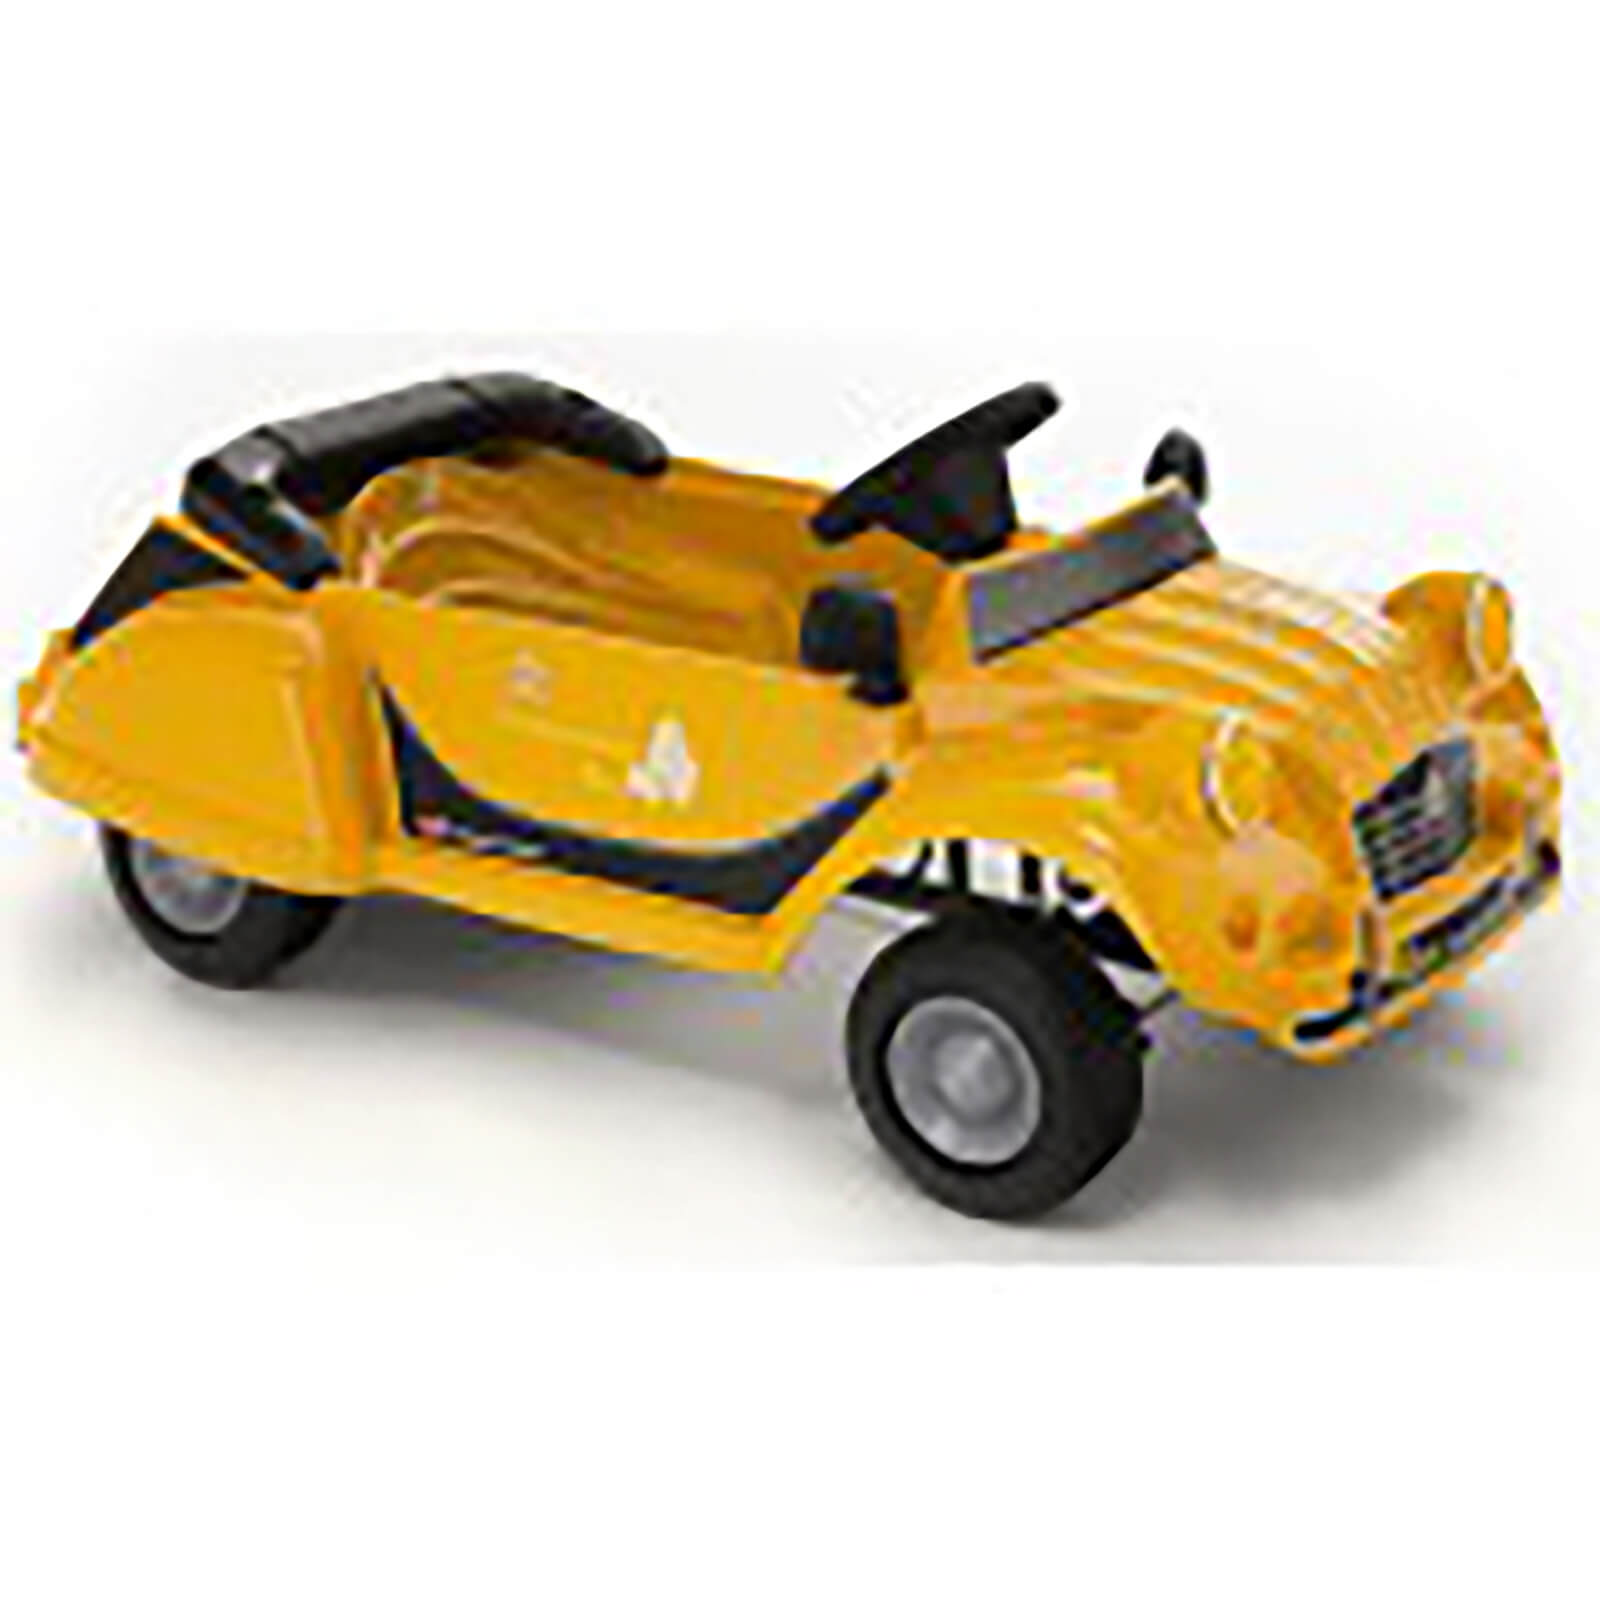 Citroen Charleston 2CV Pedal Power Car - Yellow